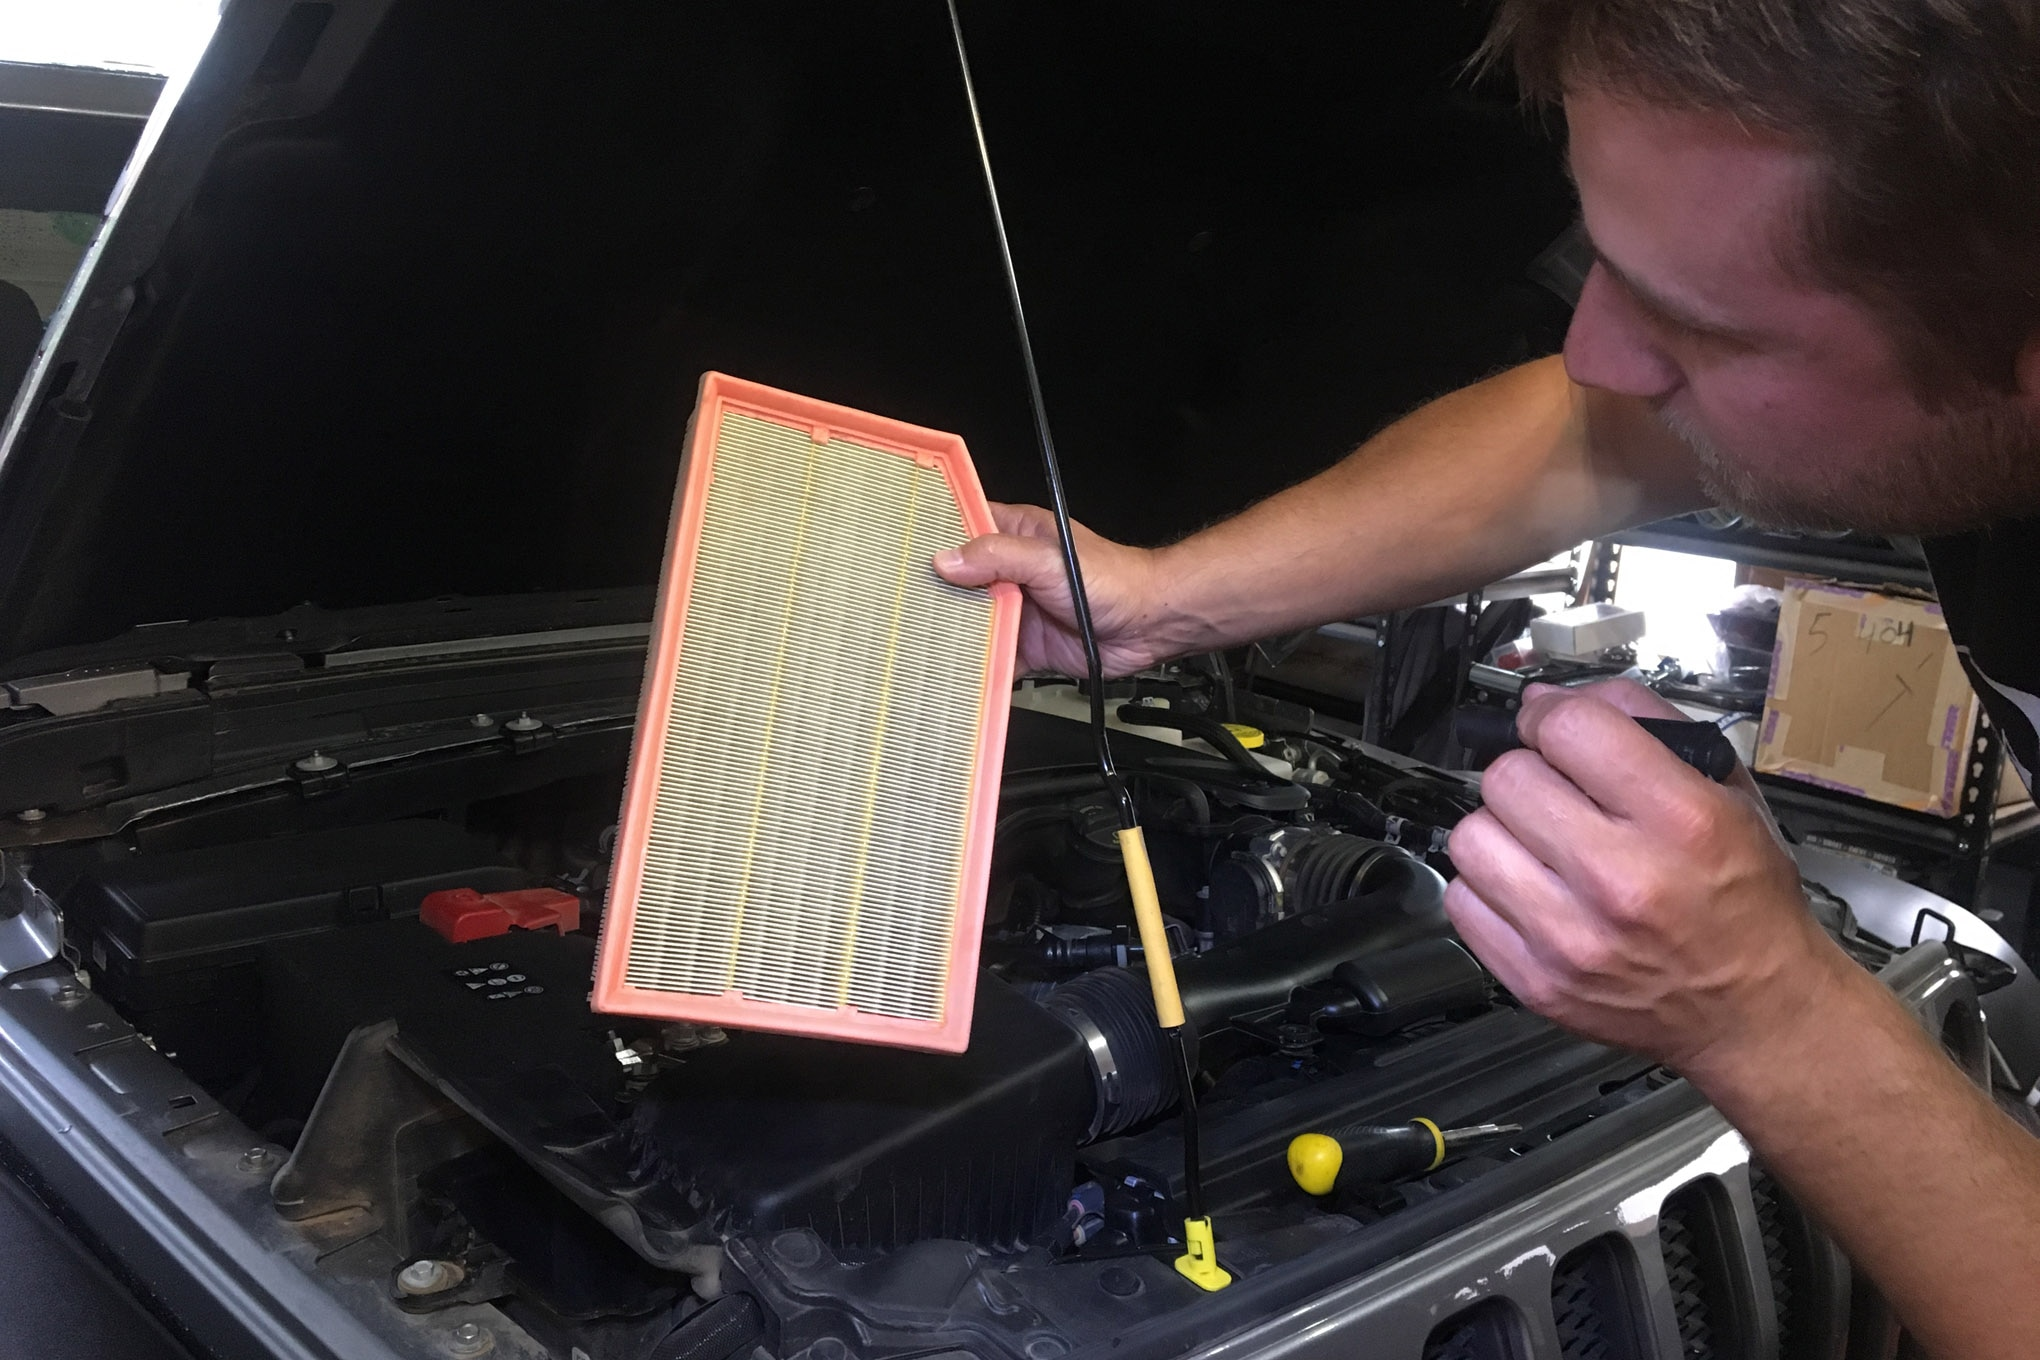 Air filter, cabin air filter, and oil filters should be clean to start a long trip. We often shake or blow out air filters mid-trip, too.